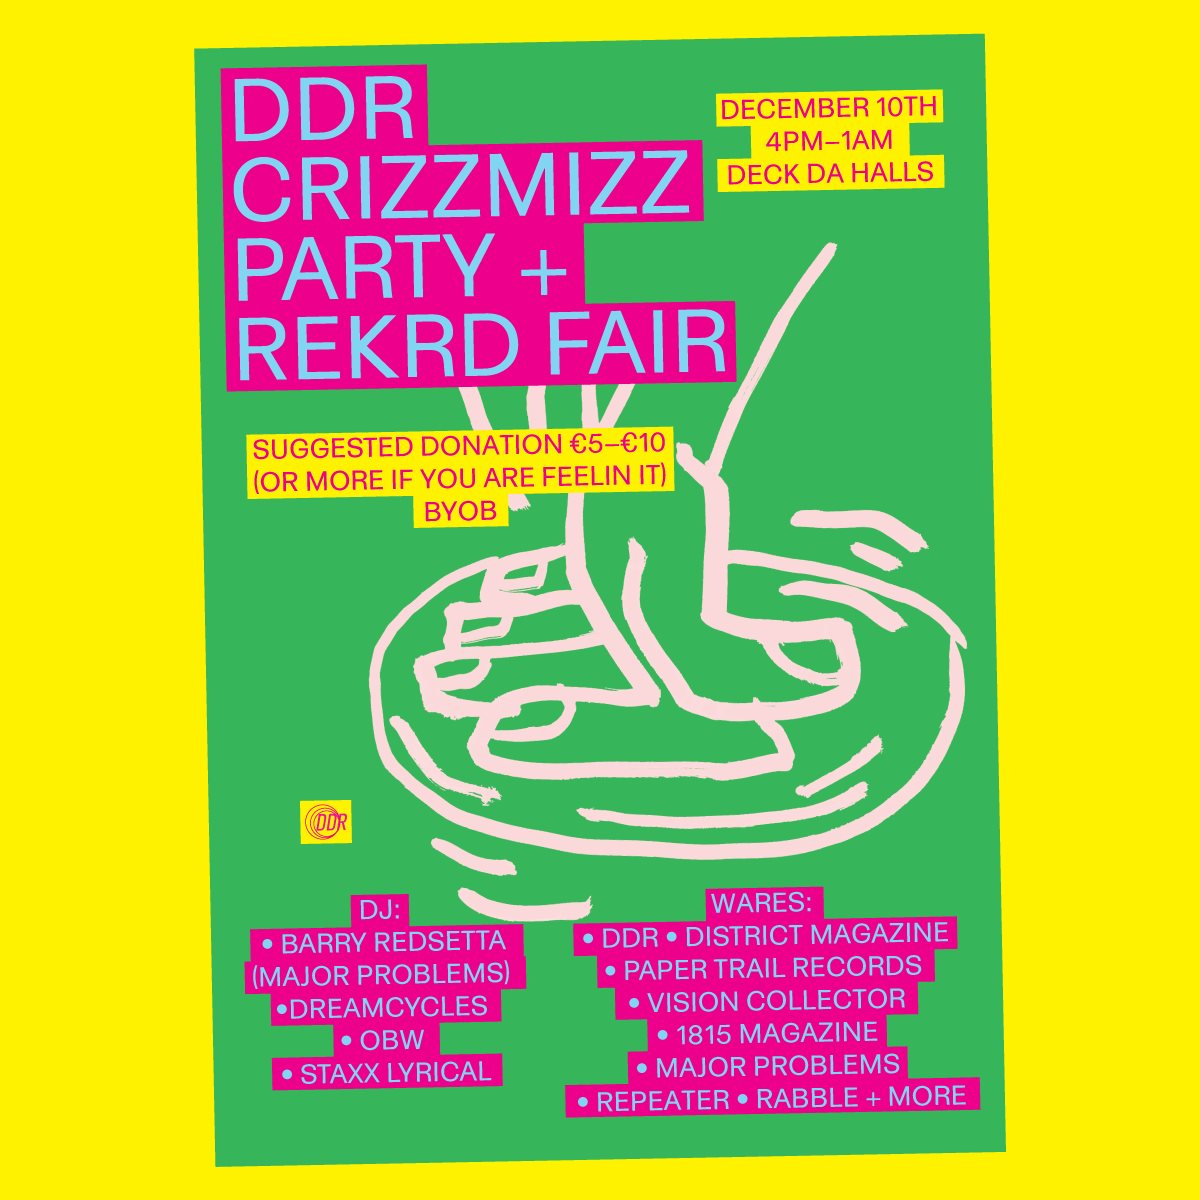 DDR Crizzmazz Party Record Fair - Flyer front